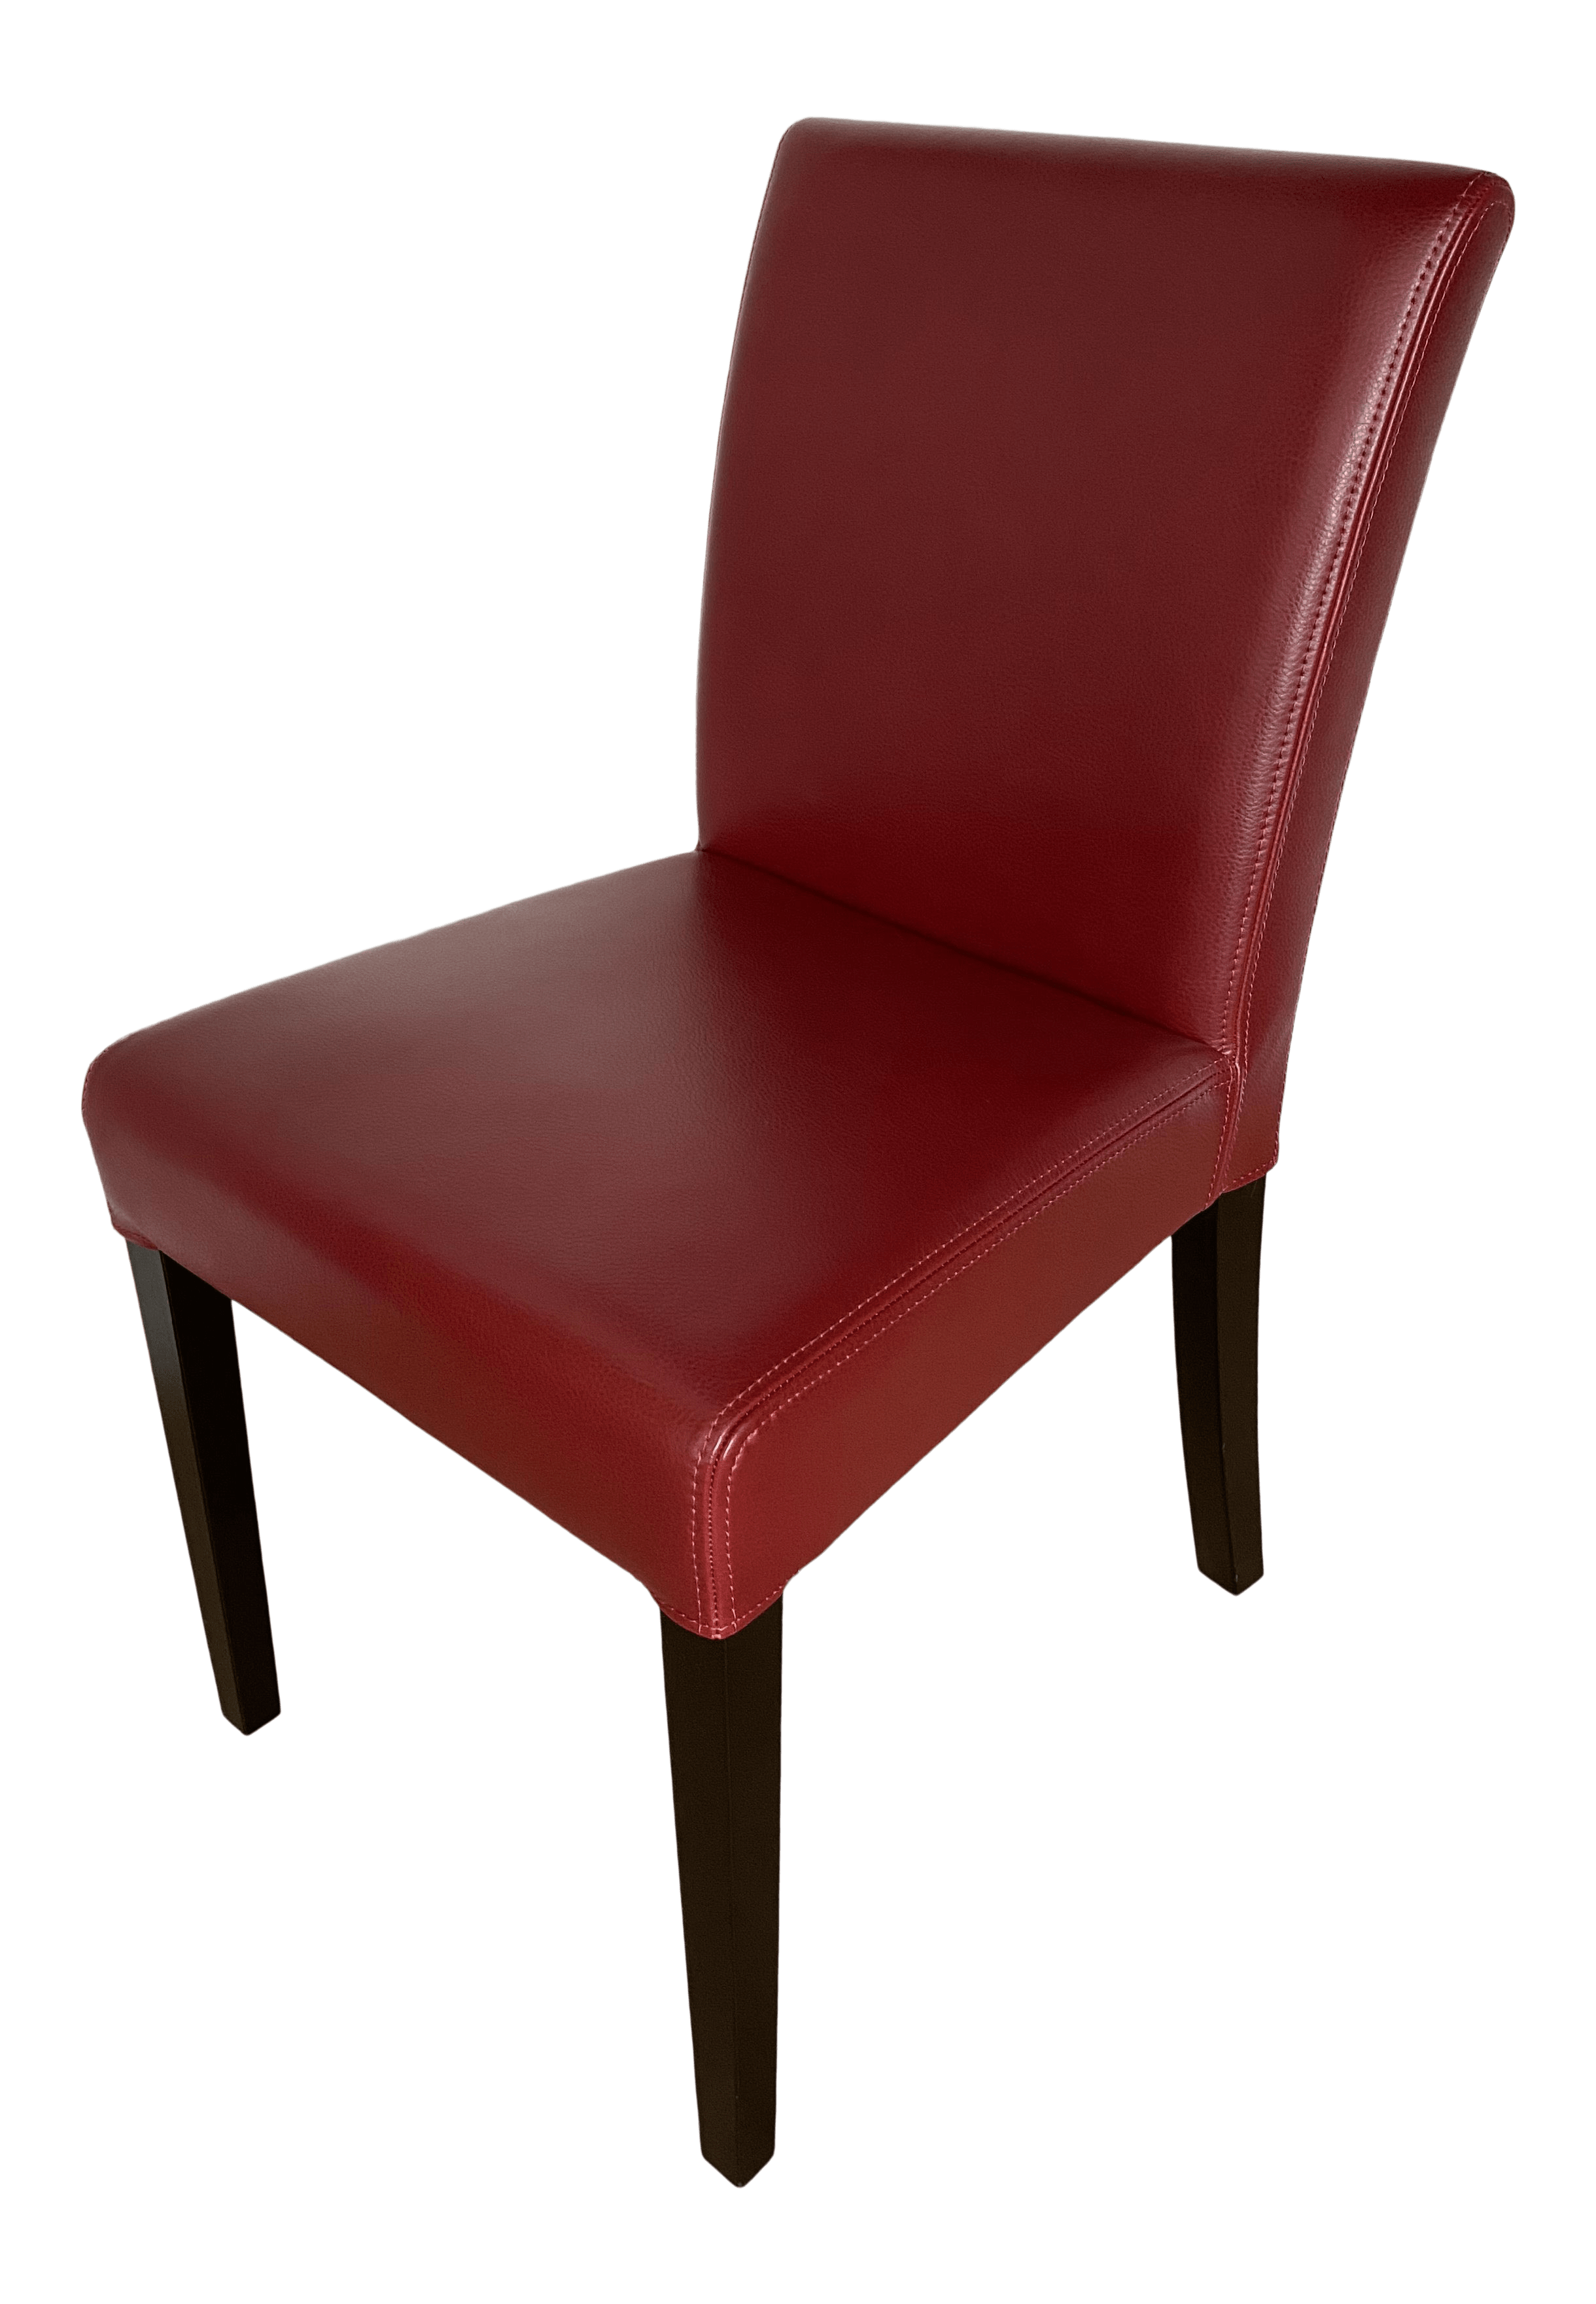 Crate Barrel Leather Dining Chairs Set Of 6 Chairish